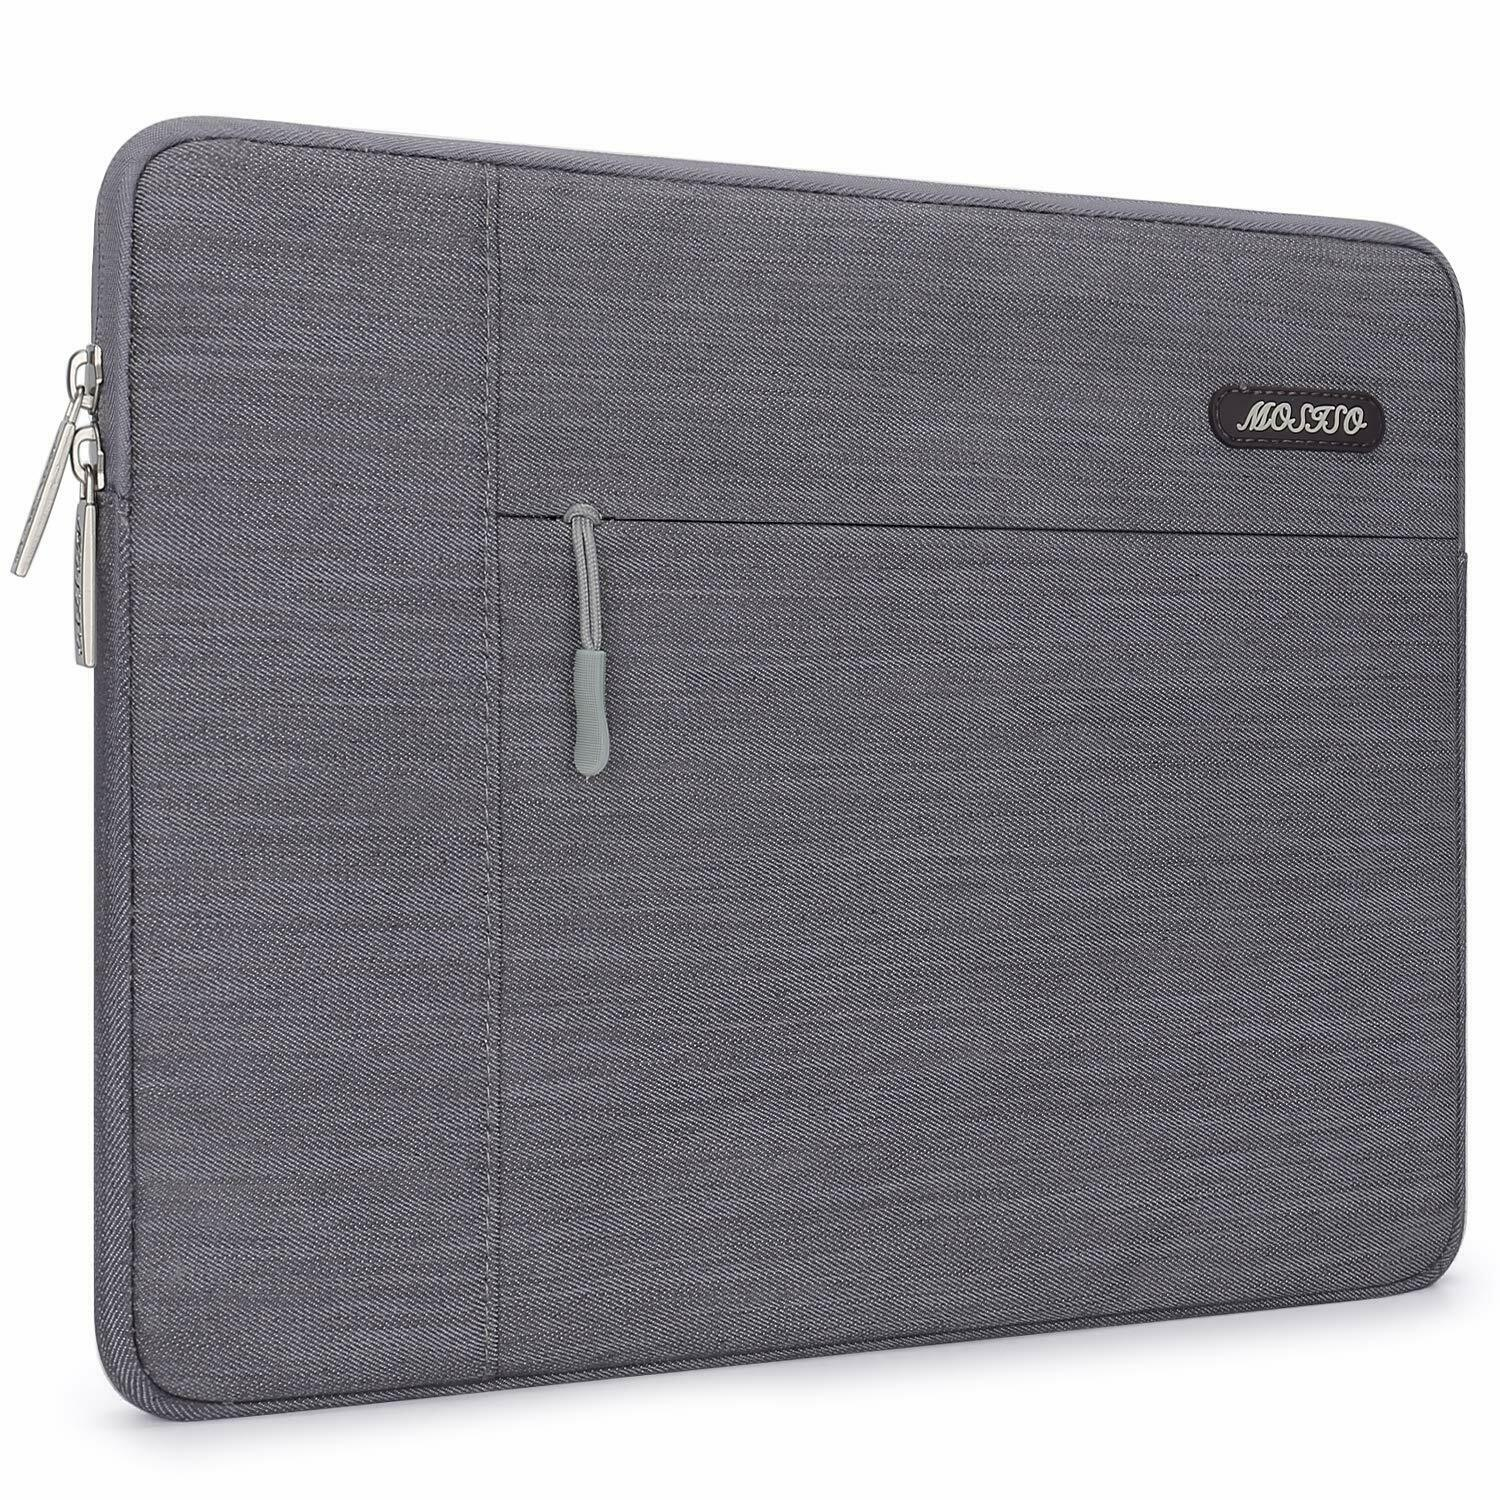 Mosiso Laptop Denim Sleeve Bag Case for Macbook 11 13 15 inc